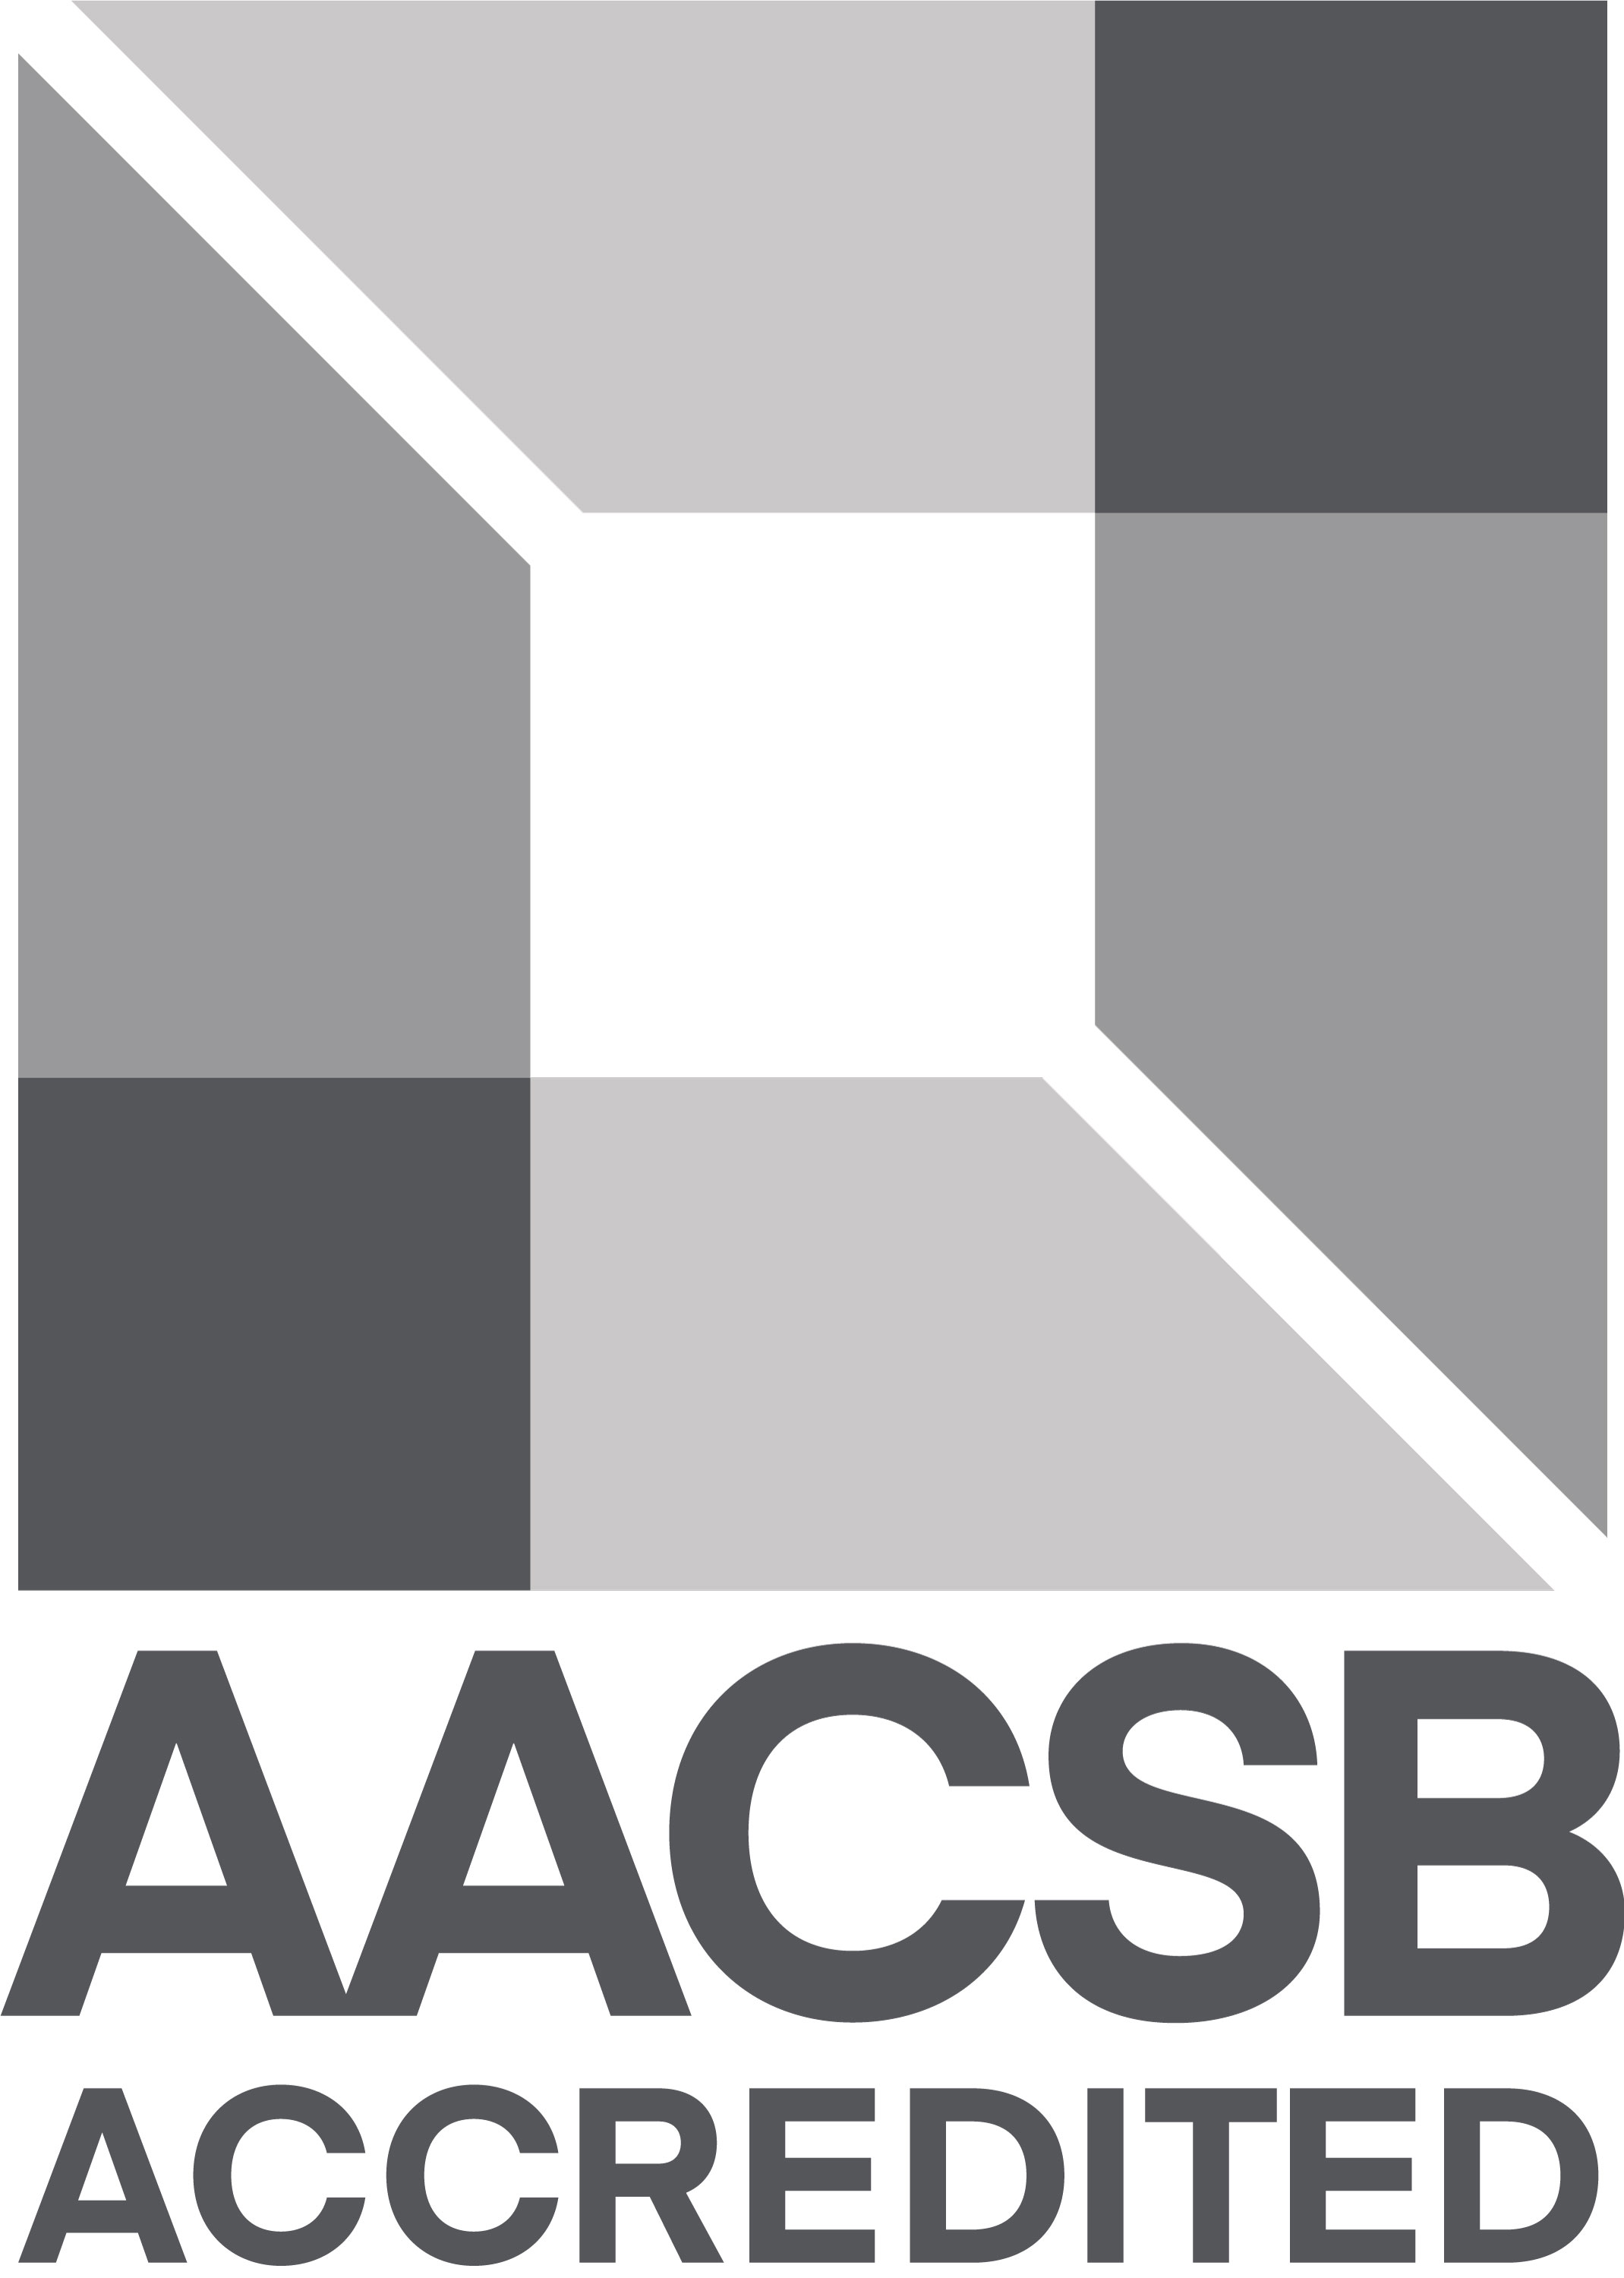 AACSB-logo-accredited-vert-gray-RGB